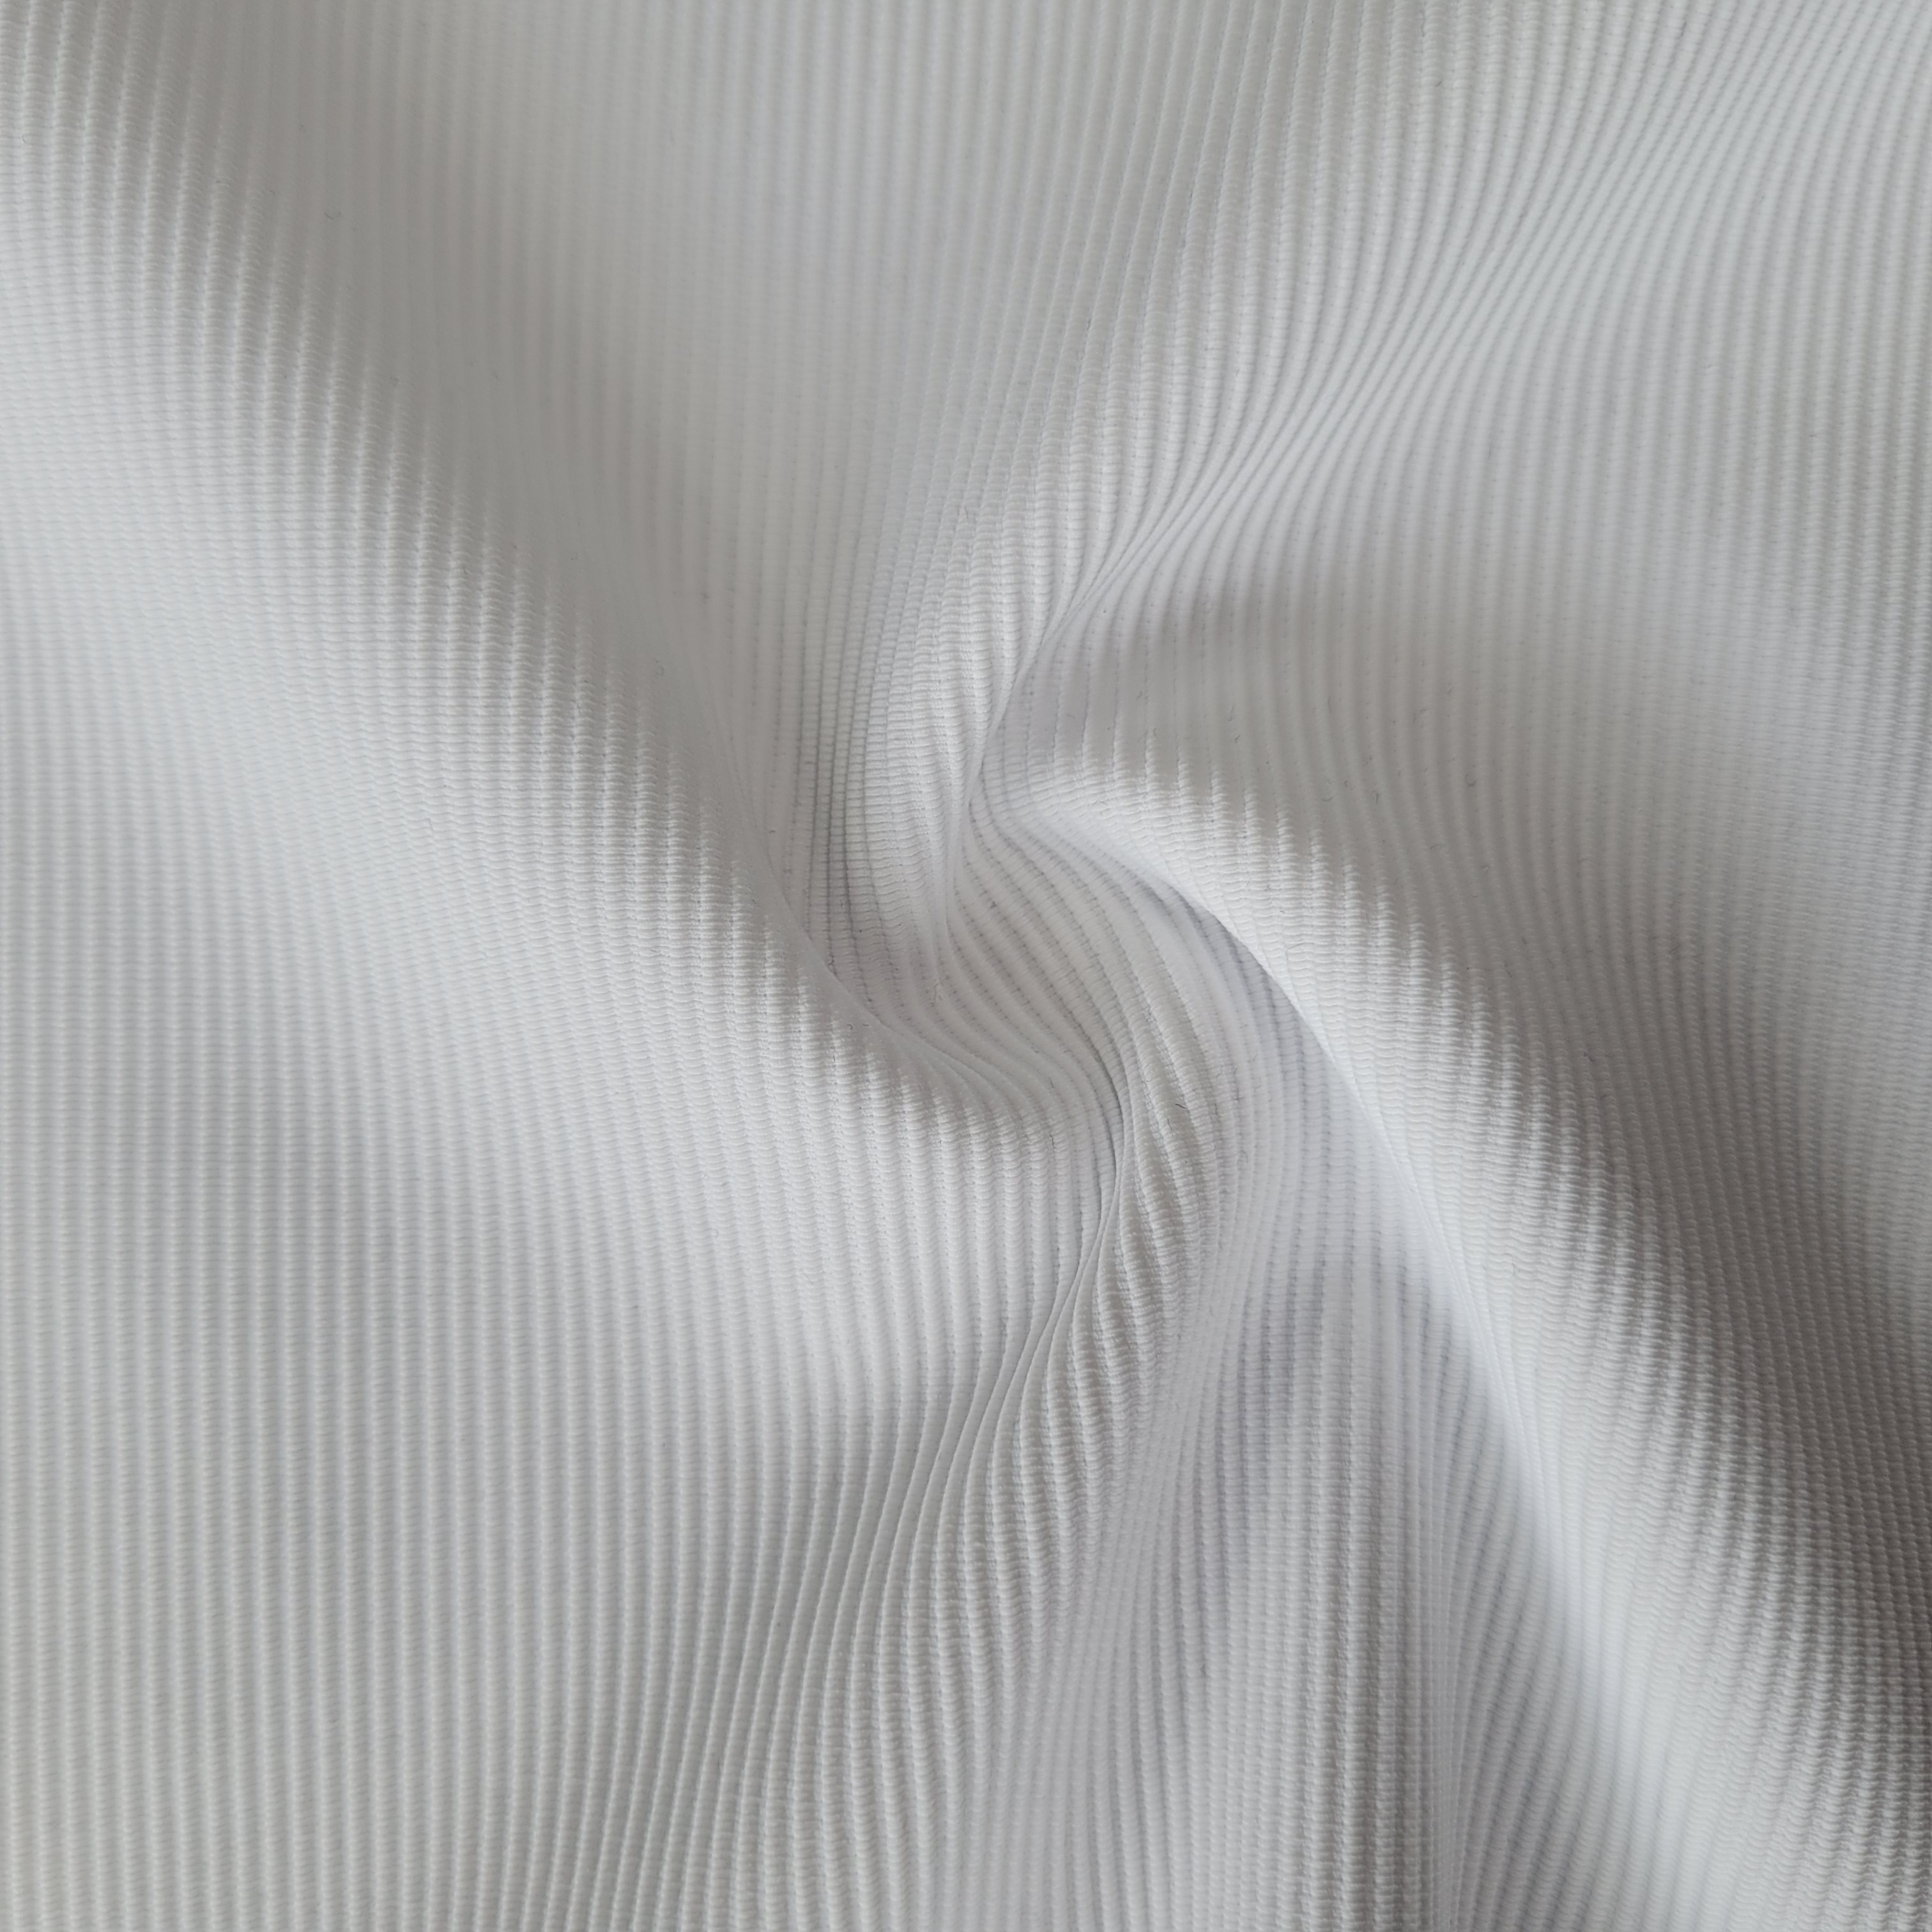 Best-selling pop polyester and spandex knitted rib fabric for yoga strap